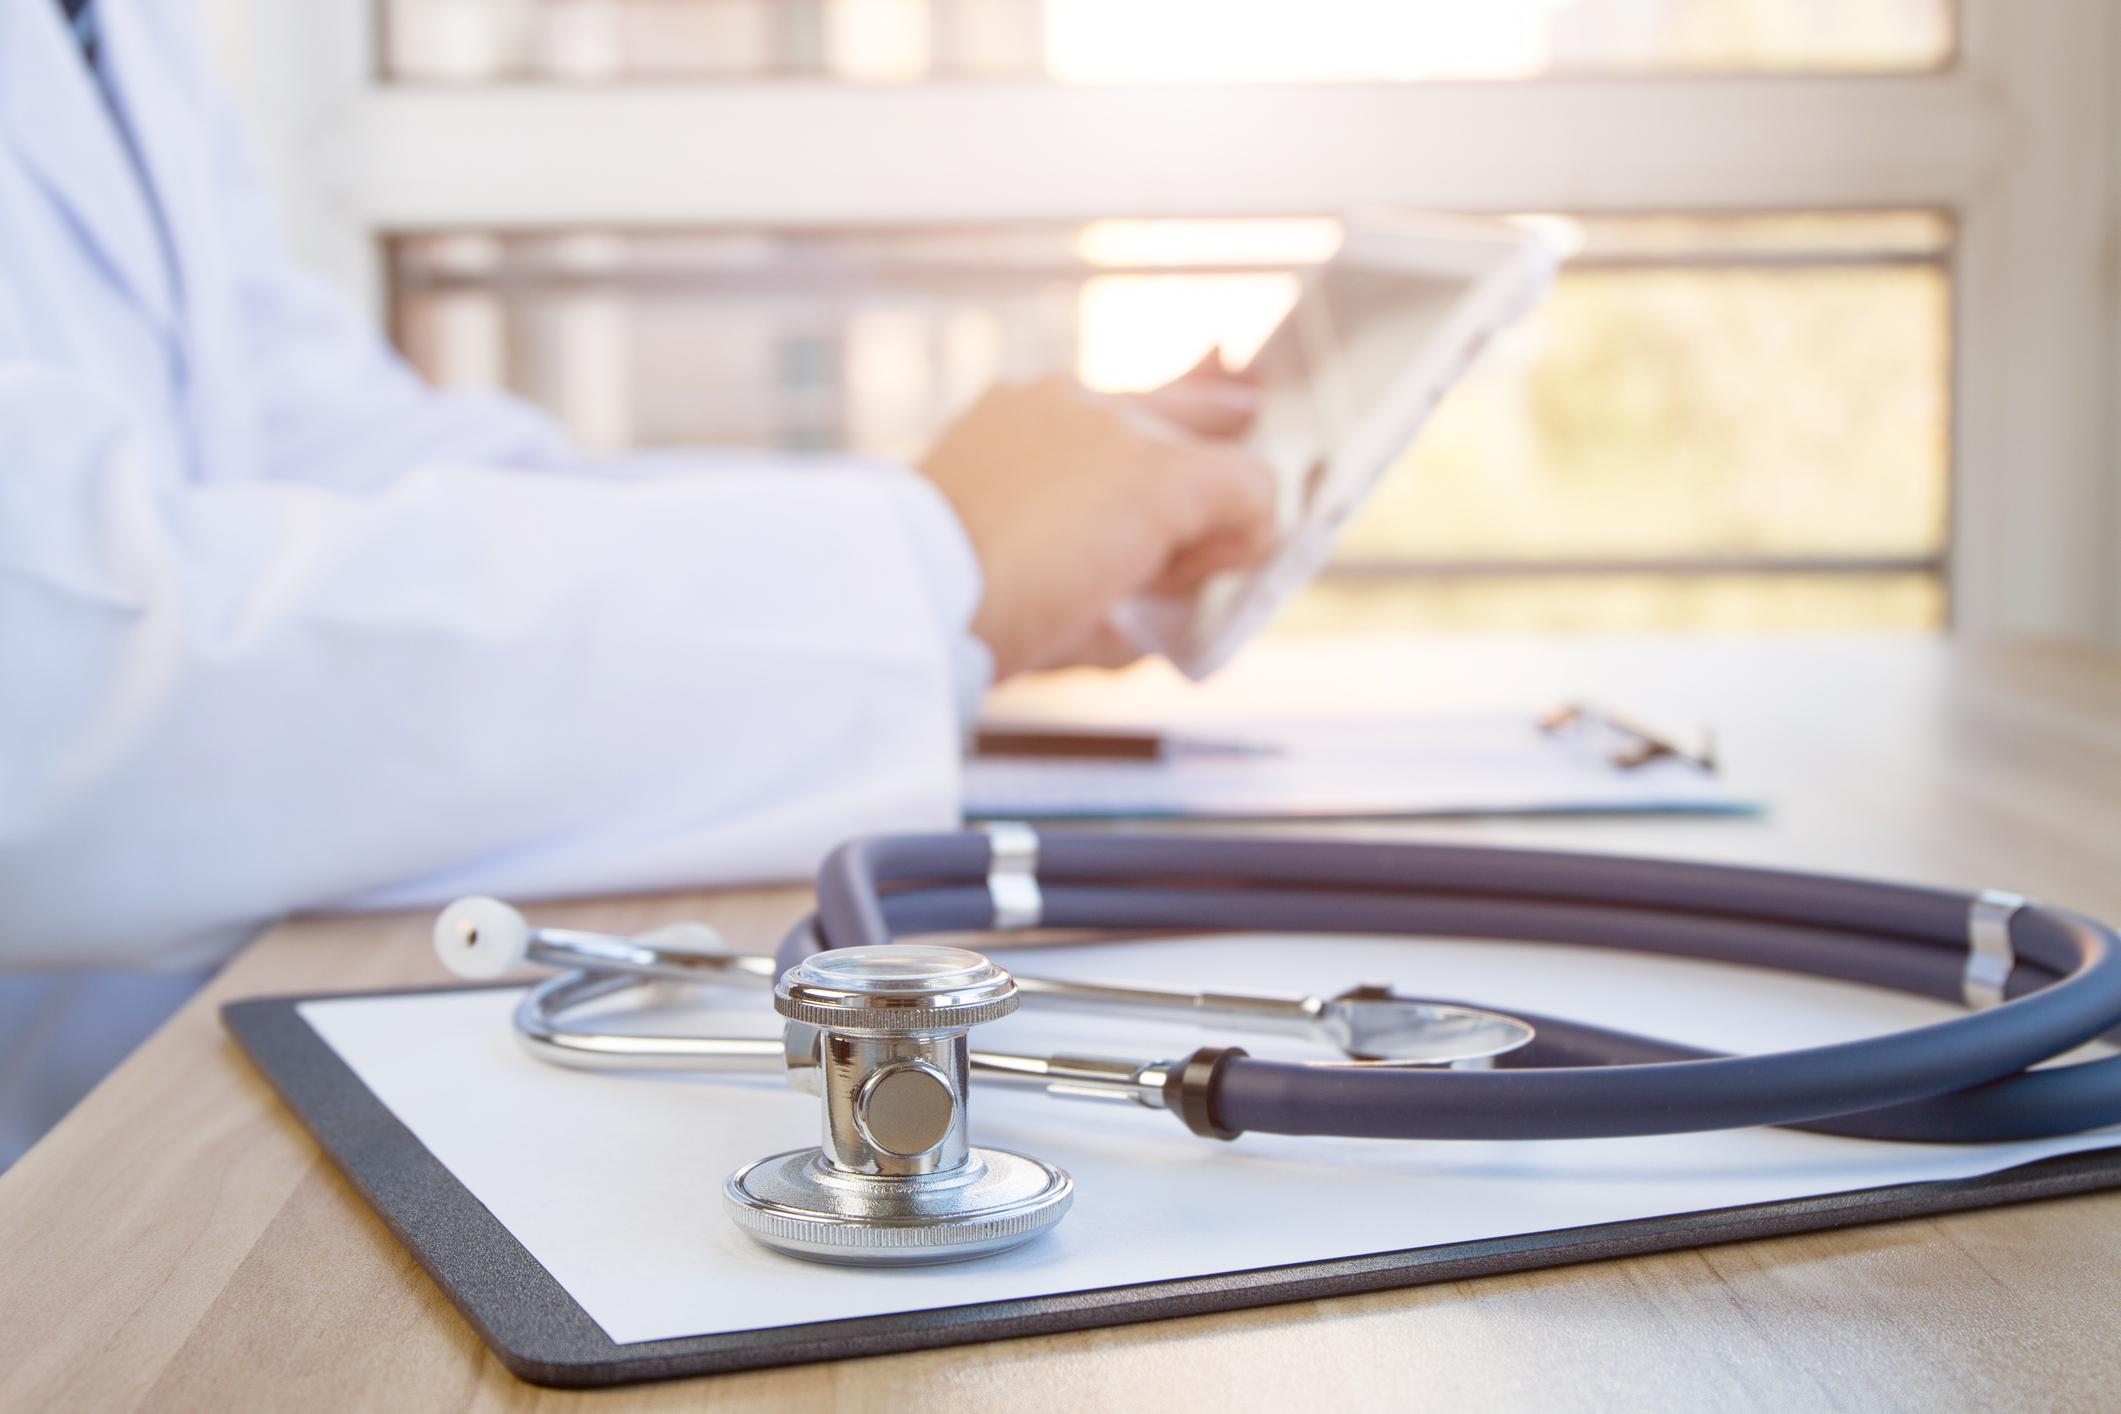 Reduce hospital readmissions with Medication Reconciliation, MTM, DURs, and Bedside Delivery